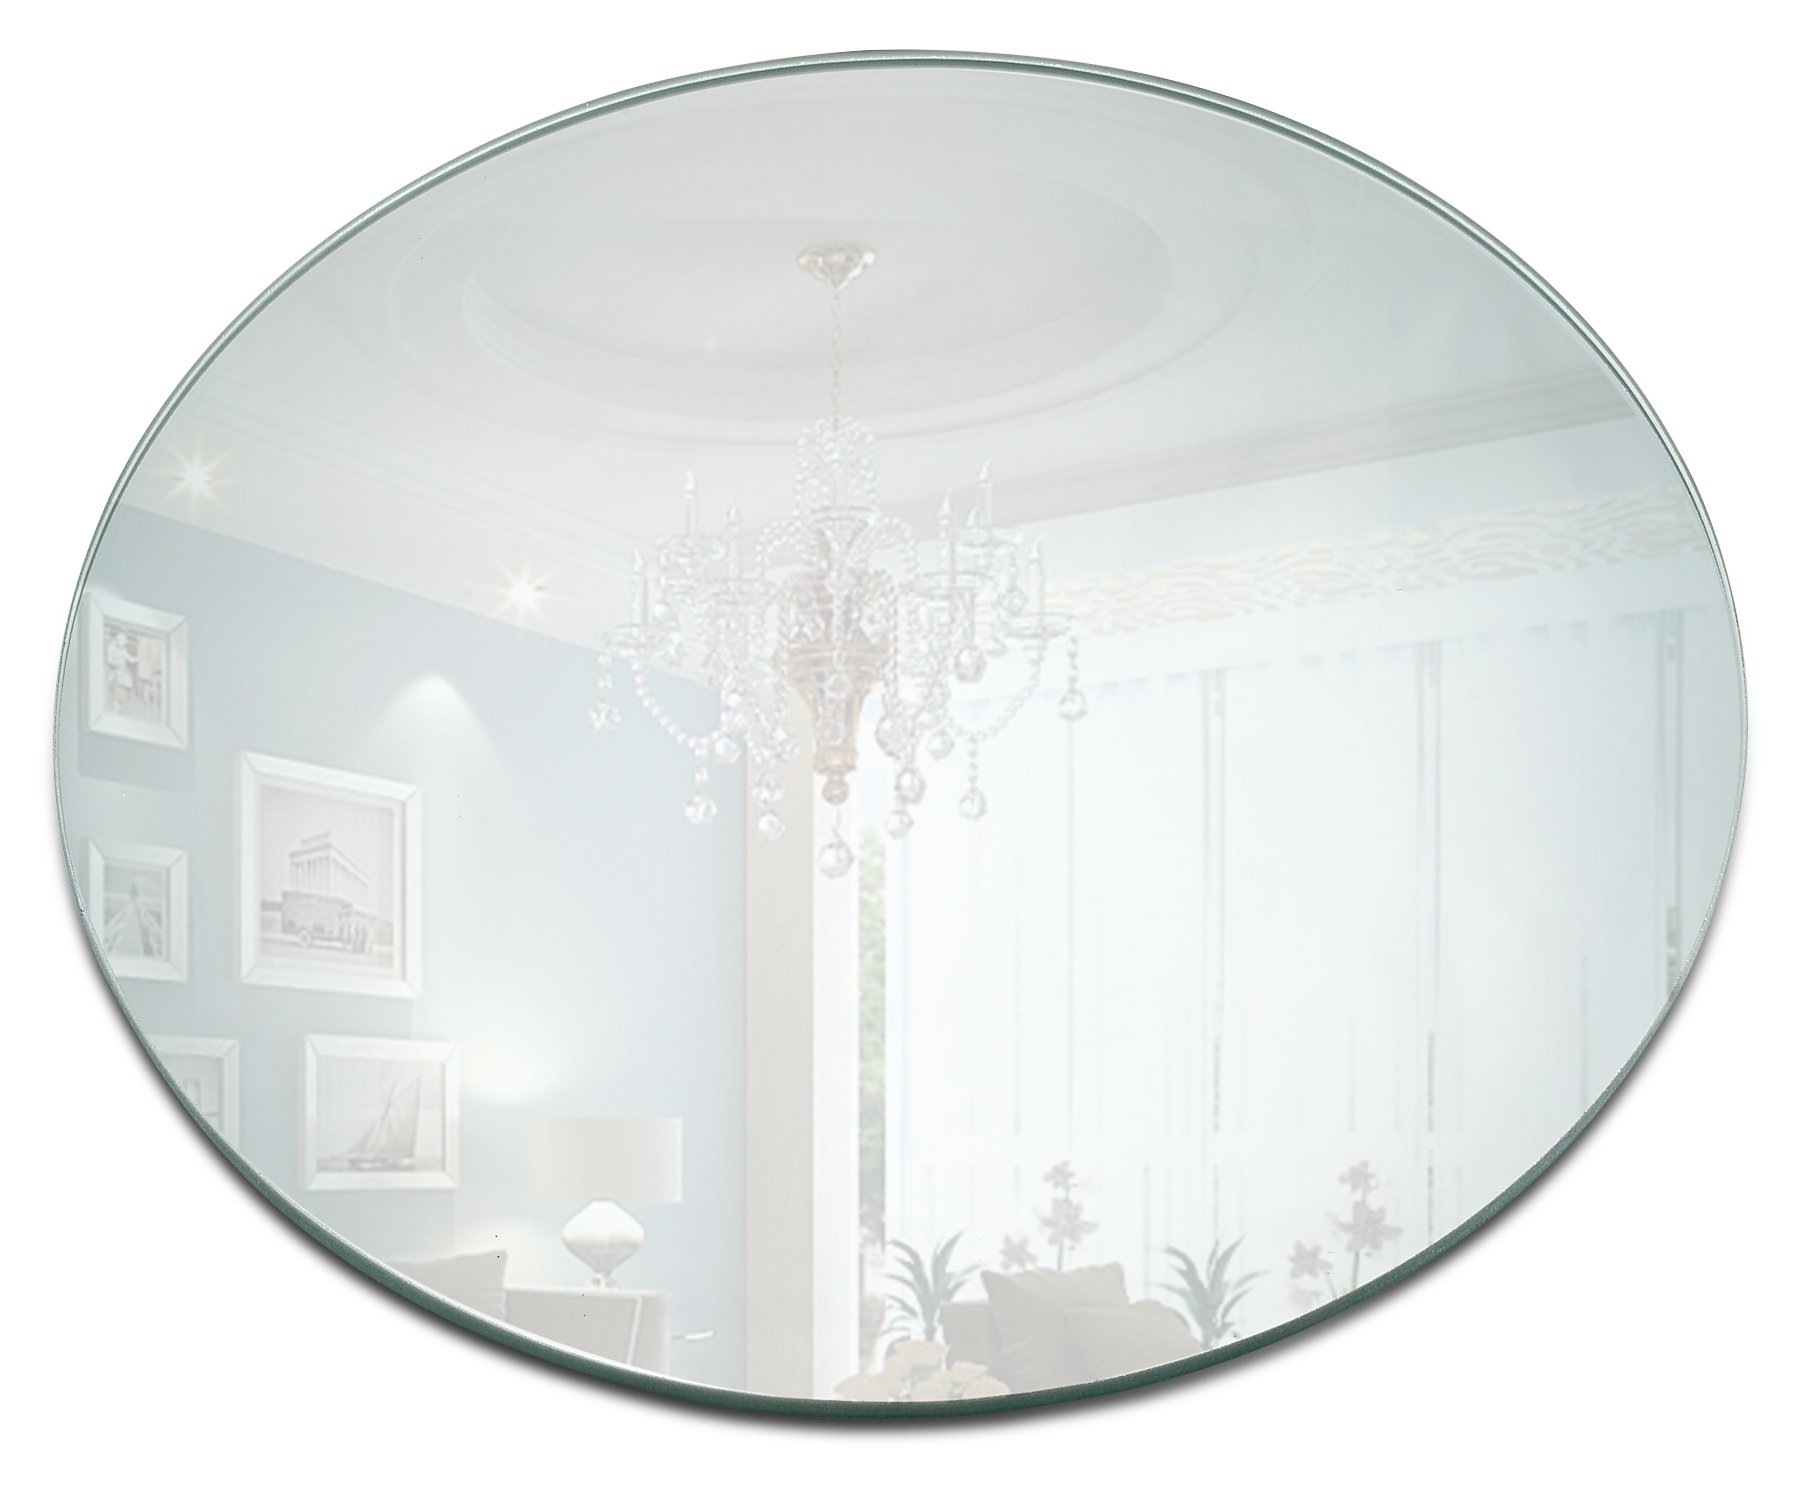 Round Mirror Candle Plate Set - Box of 12 Mirror Trays - 10 inch Diameter, 1.5 mm Thick Rounded Edge - Round Mirror for Centerpieces, Wall Décor, Crafts